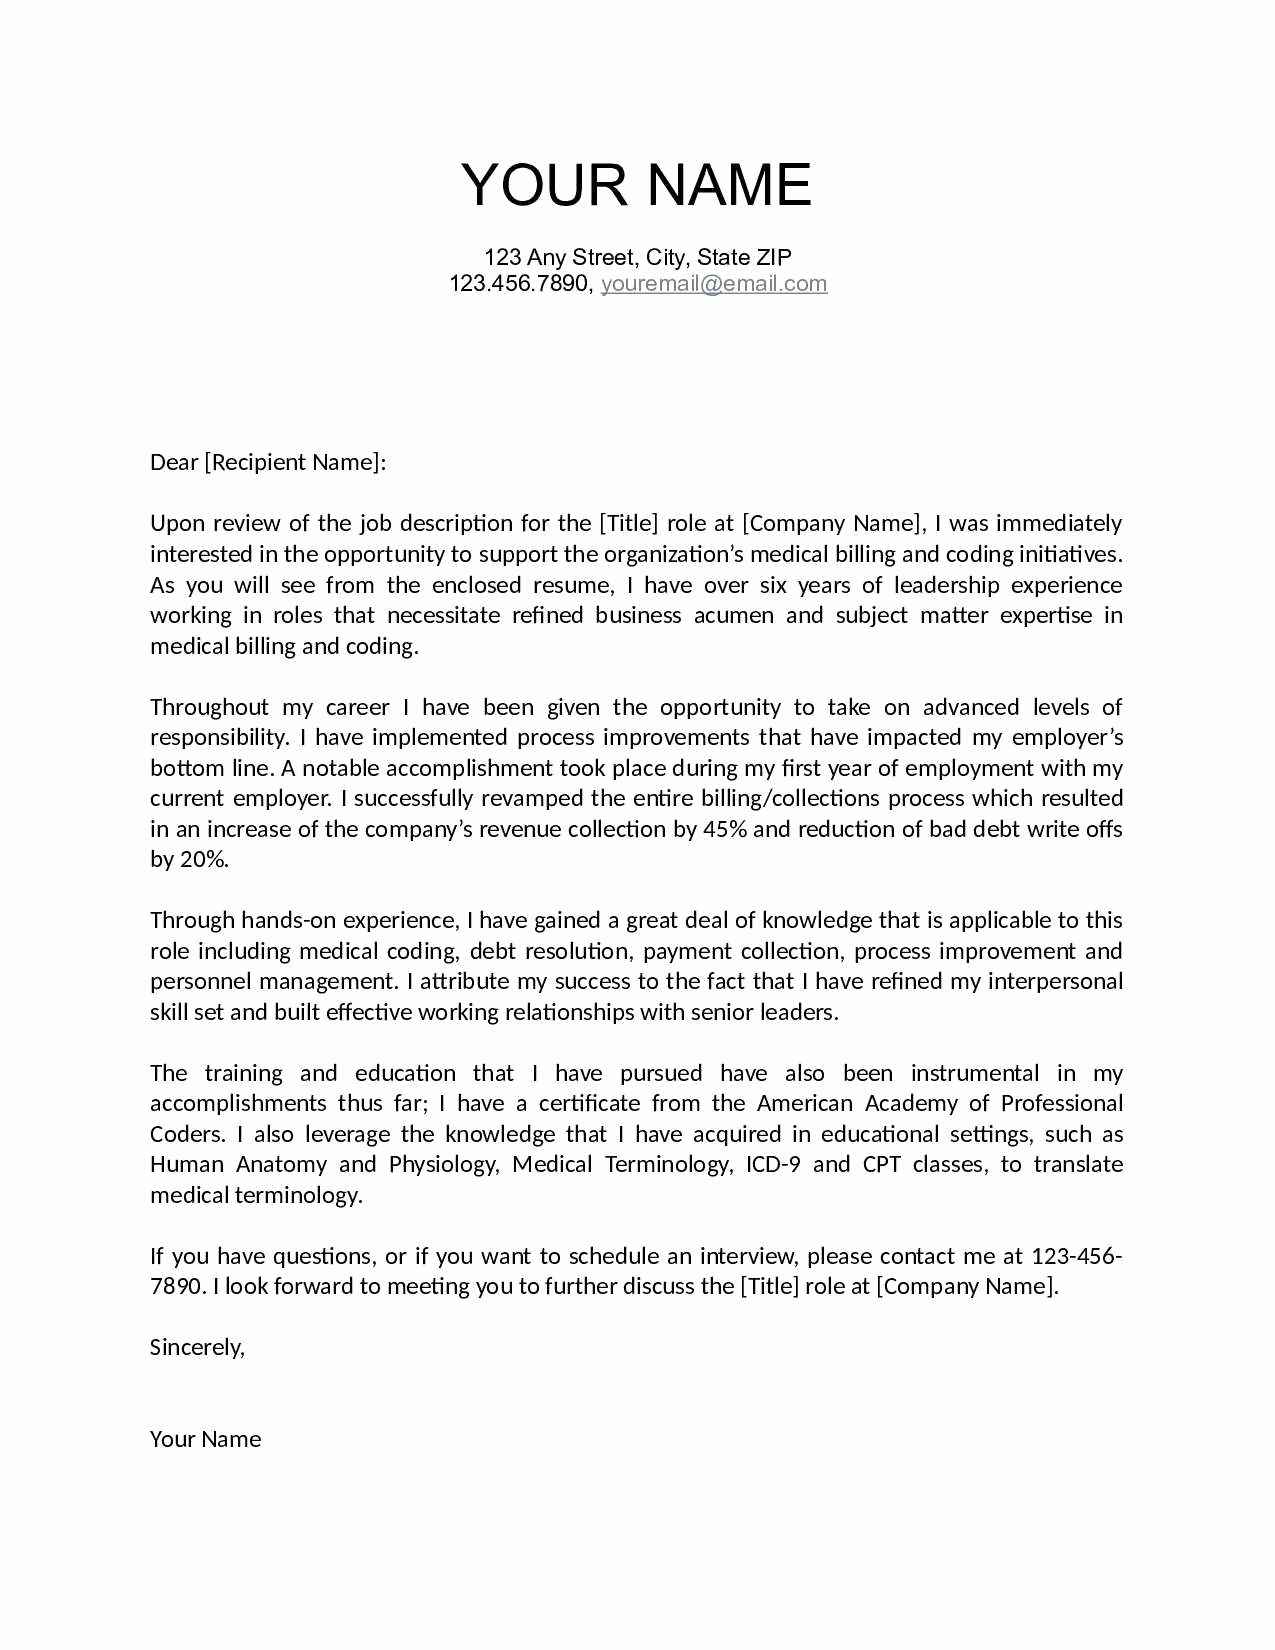 Letter Of Support Template for A Person - Resume Template for someone who Has Never Worked Fresh Job Fer